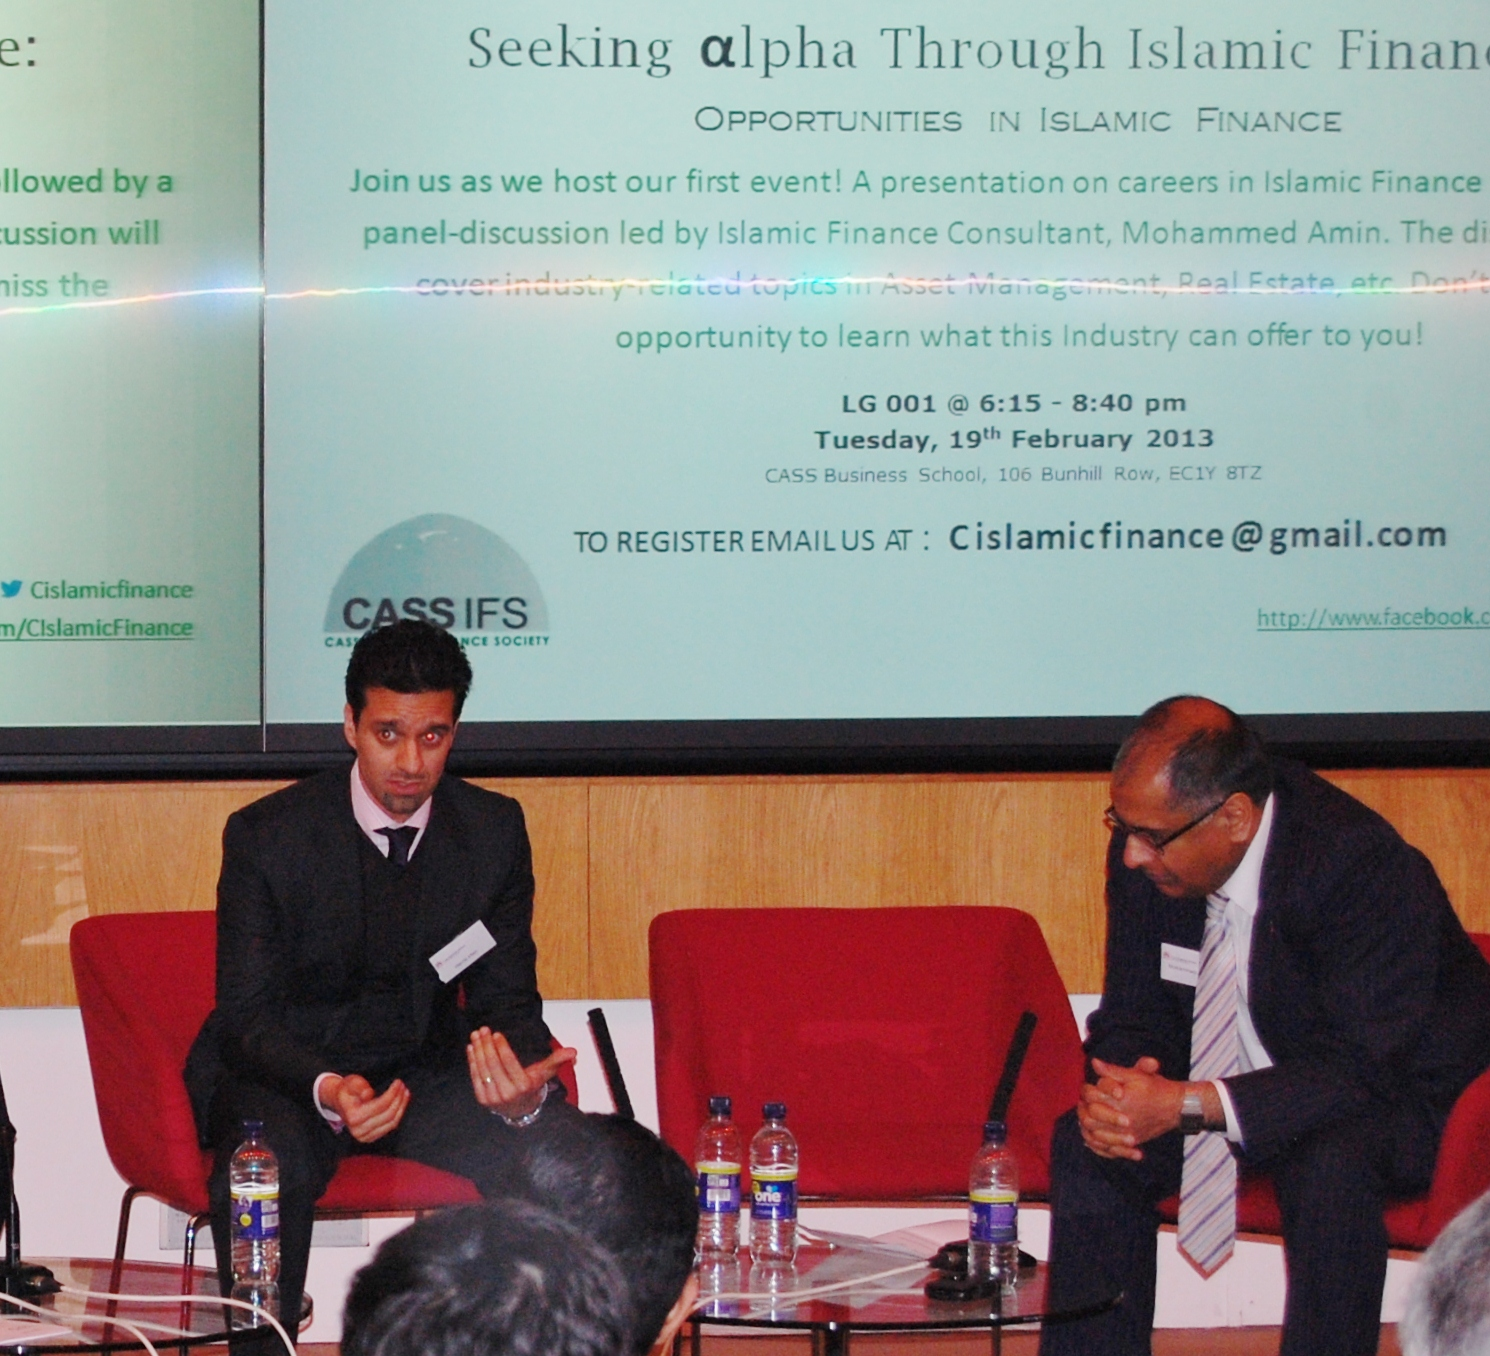 islamic finance on the rise Islamic insurance on the rise demand for islamic products has driven the rise of takaful, say experts like many islamic finance products, takaful first took hold in south east asia, thanks to strong government support.